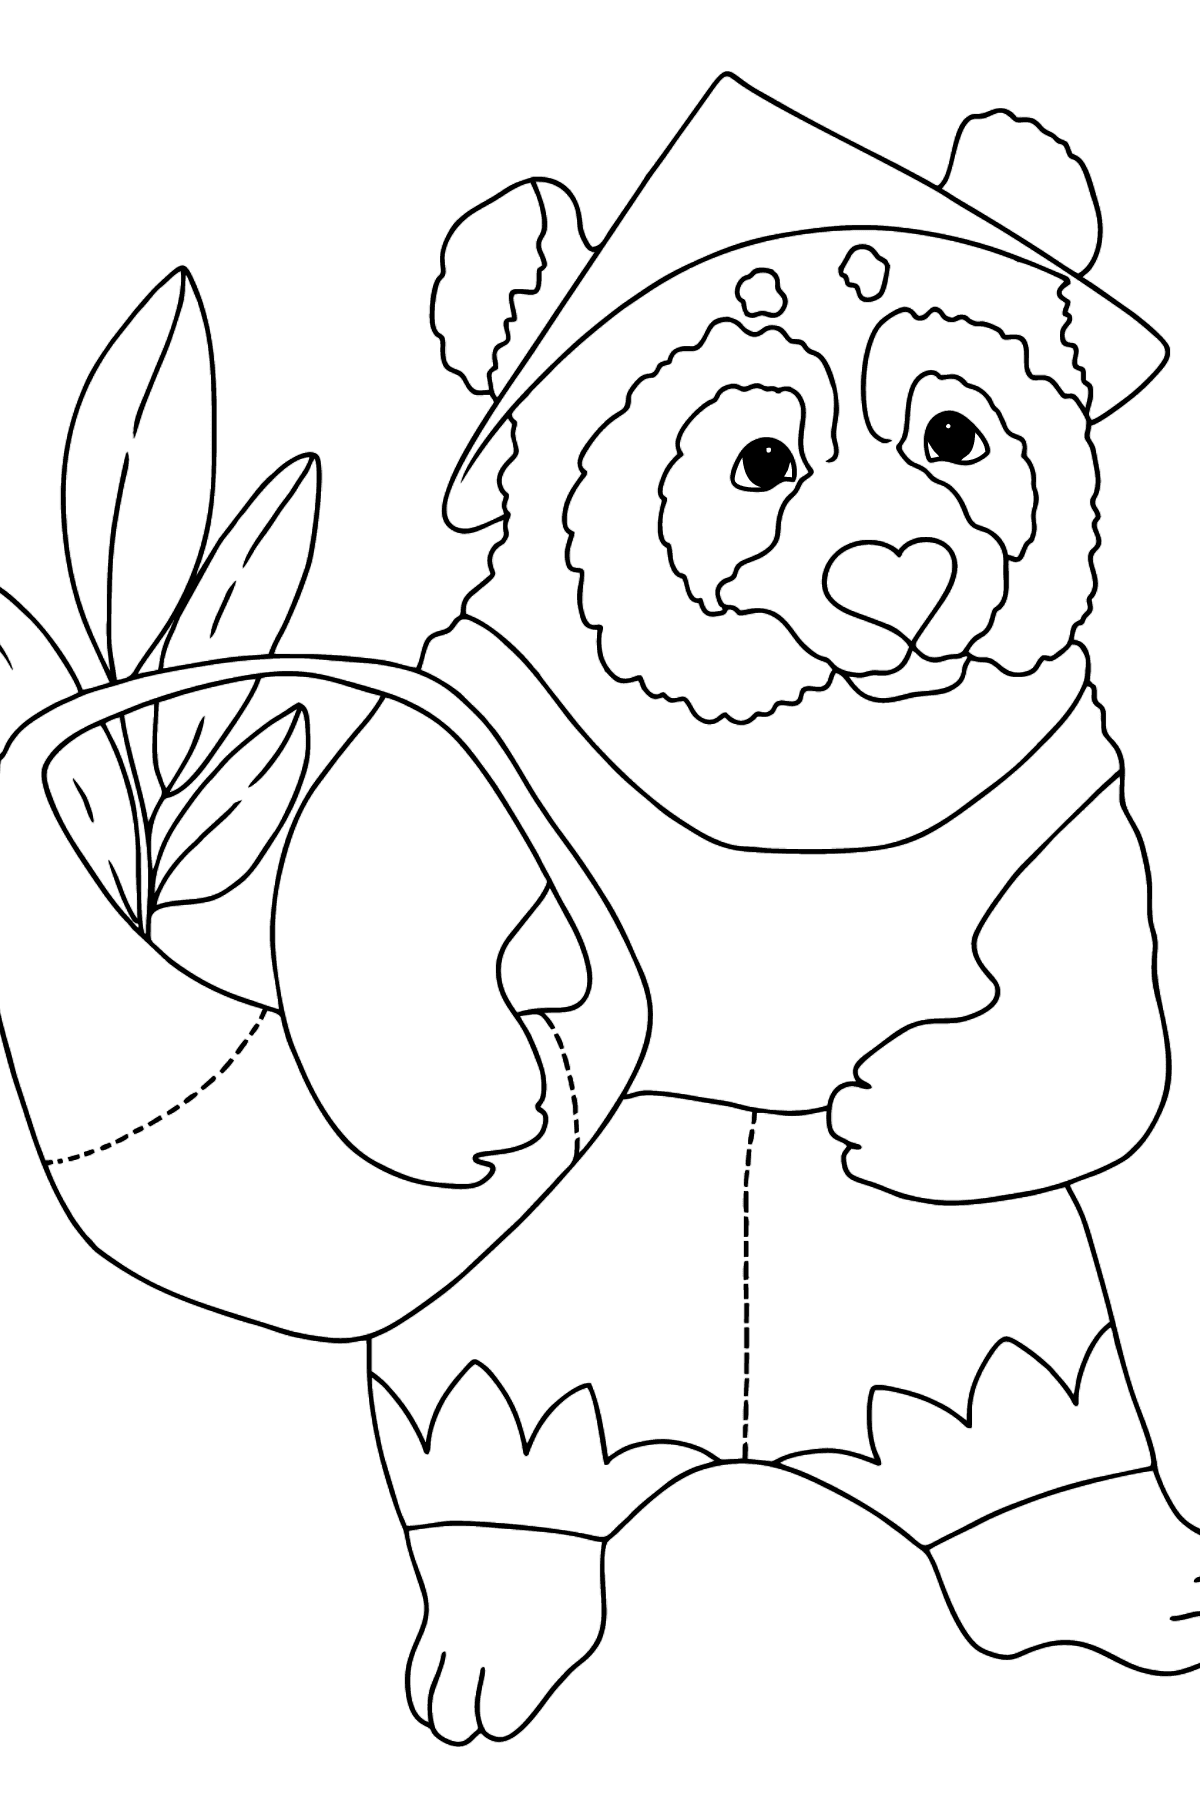 Coloring Page - A Panda with Crop - Coloring Pages for Kids